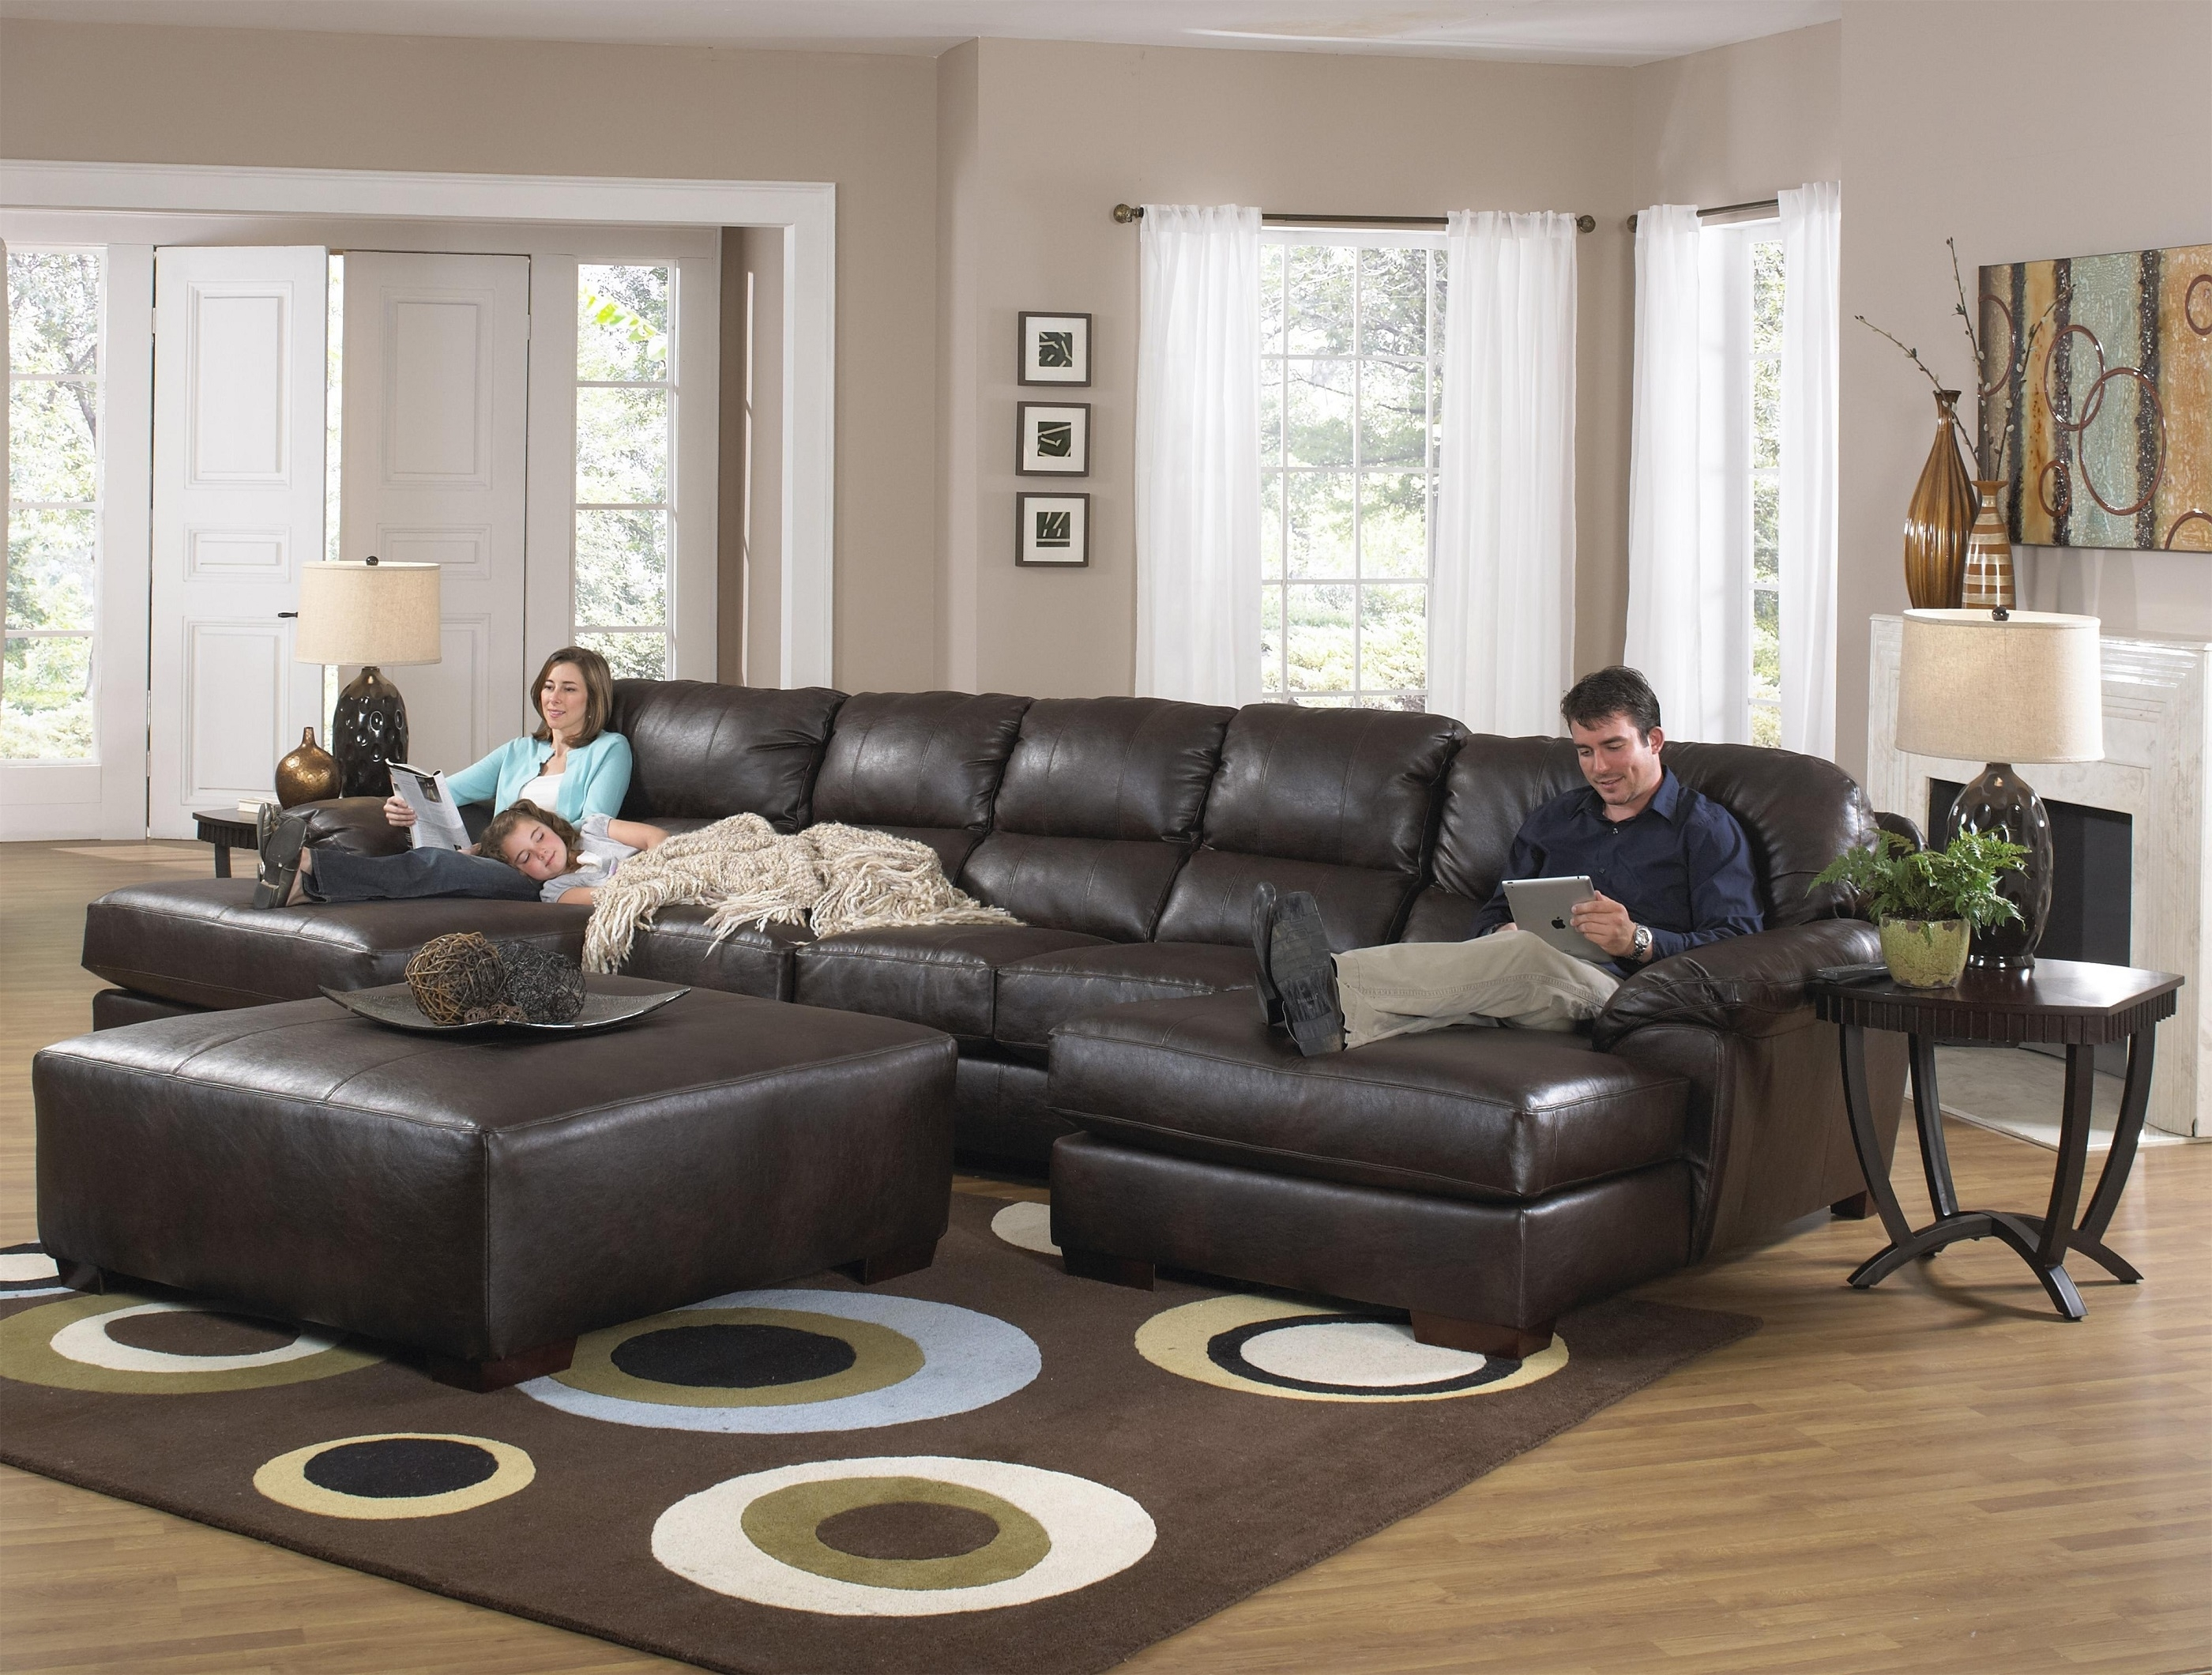 Sofa : Sofa Pit Chair Fabulous Wrought Iron Chaise Lounge Extra With Pittsburgh Sectional Sofas (Image 8 of 10)